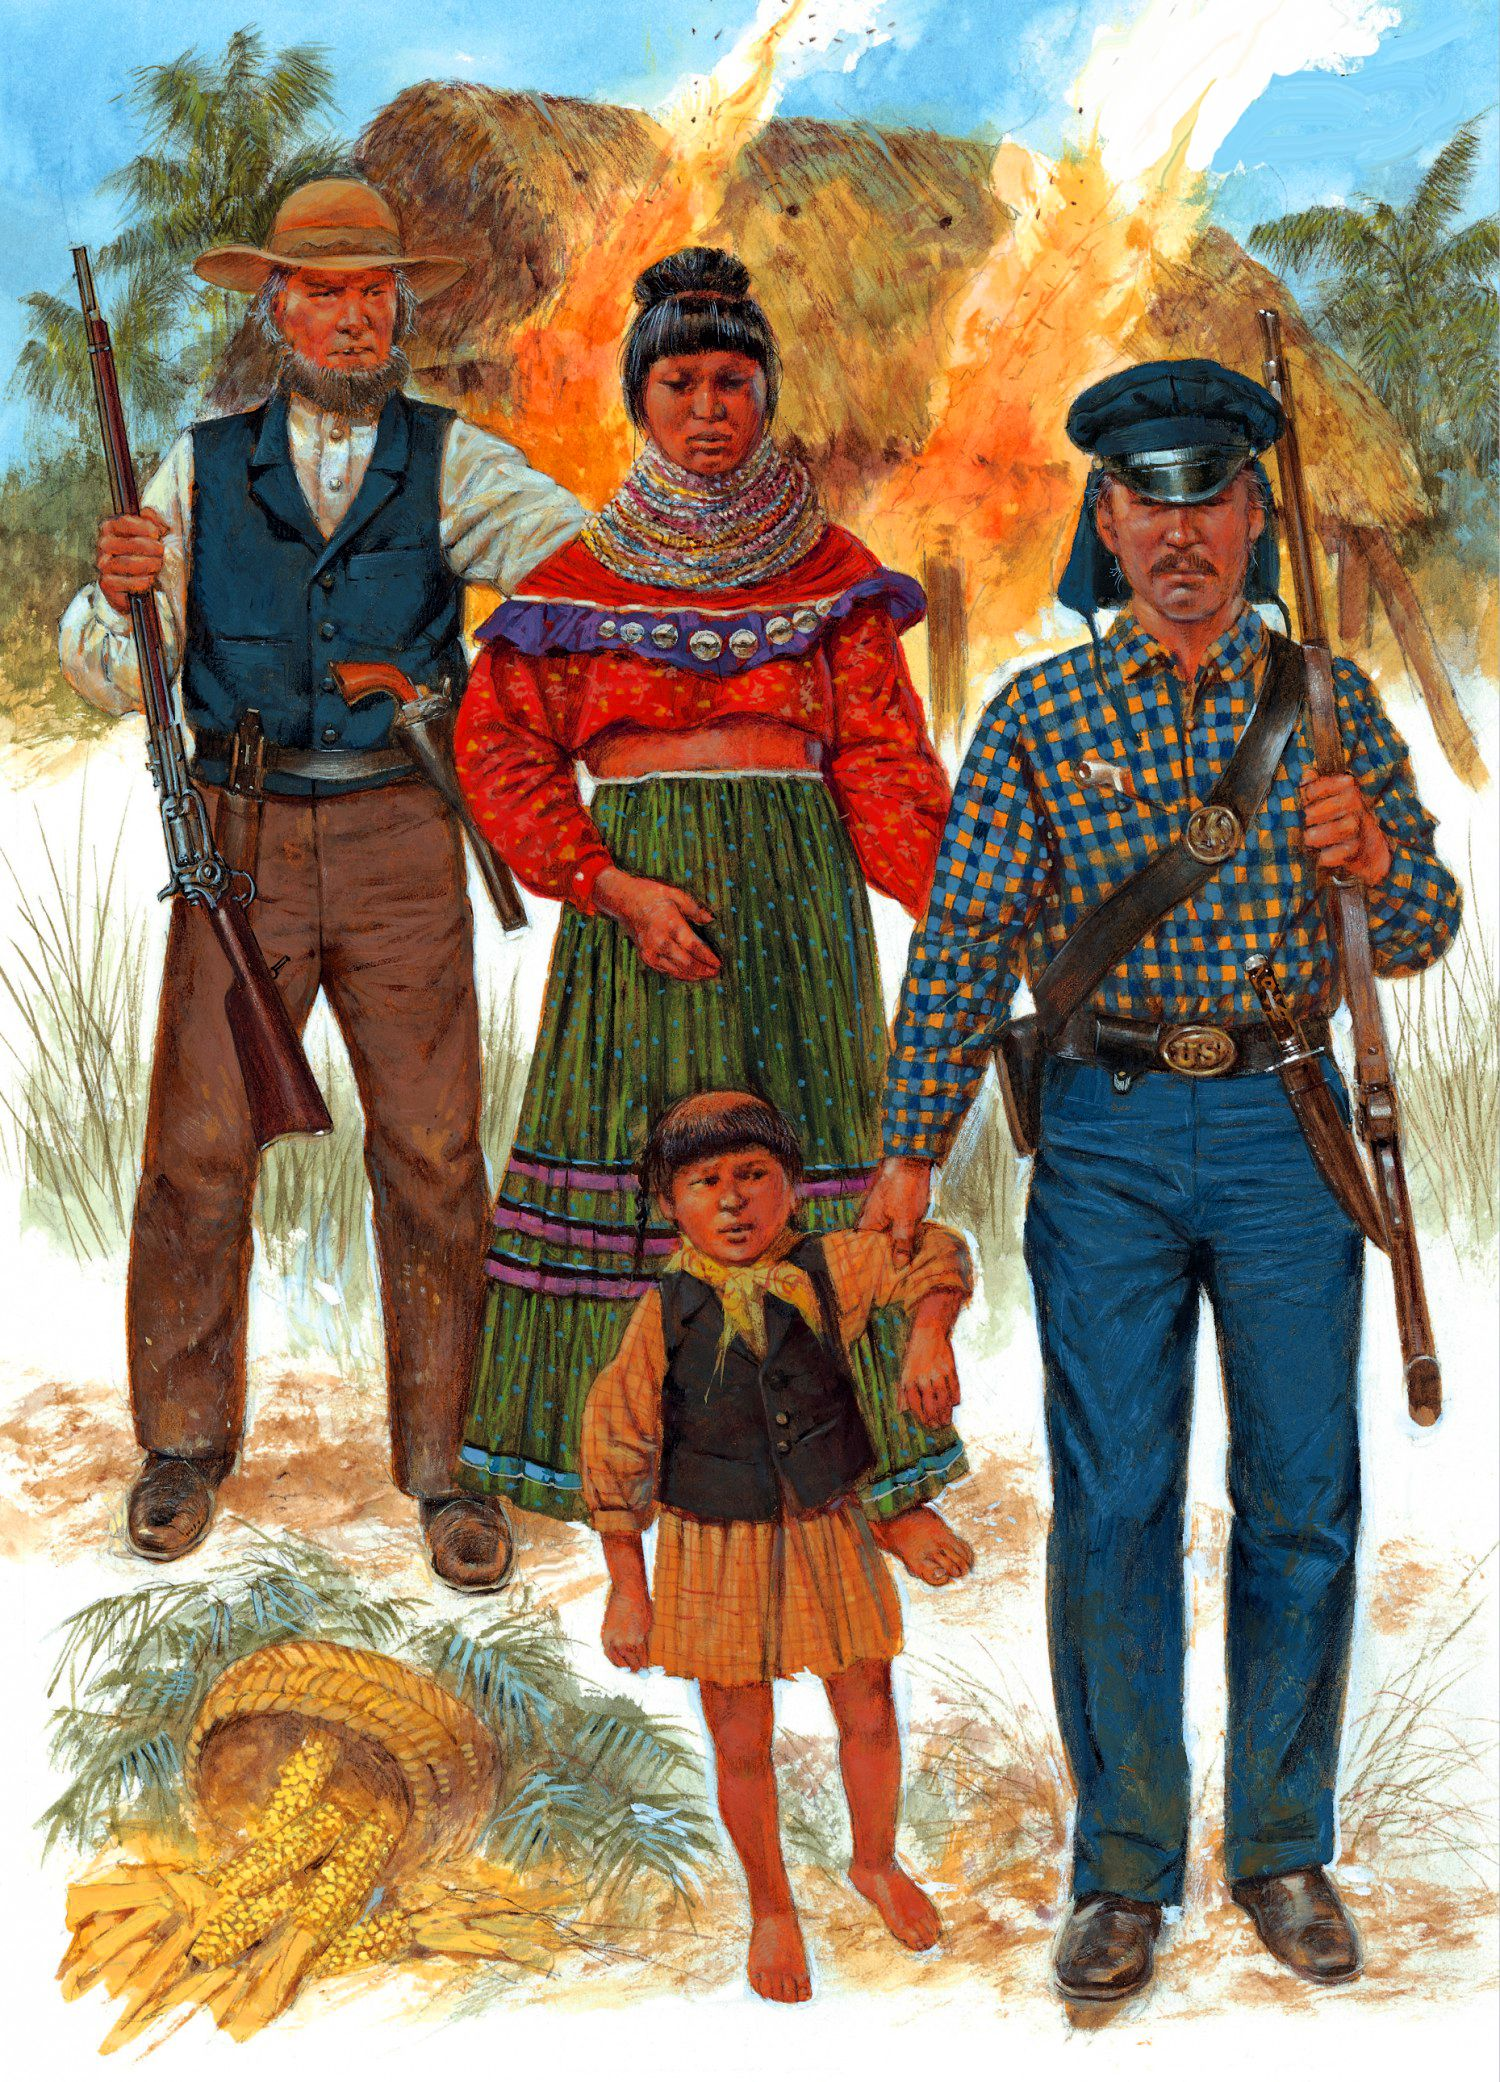 the history of the seminole indians during the colonial period in america Magical history tour native and colonial america people may take the native americans' side and believe the tribes who kept them alive during the.